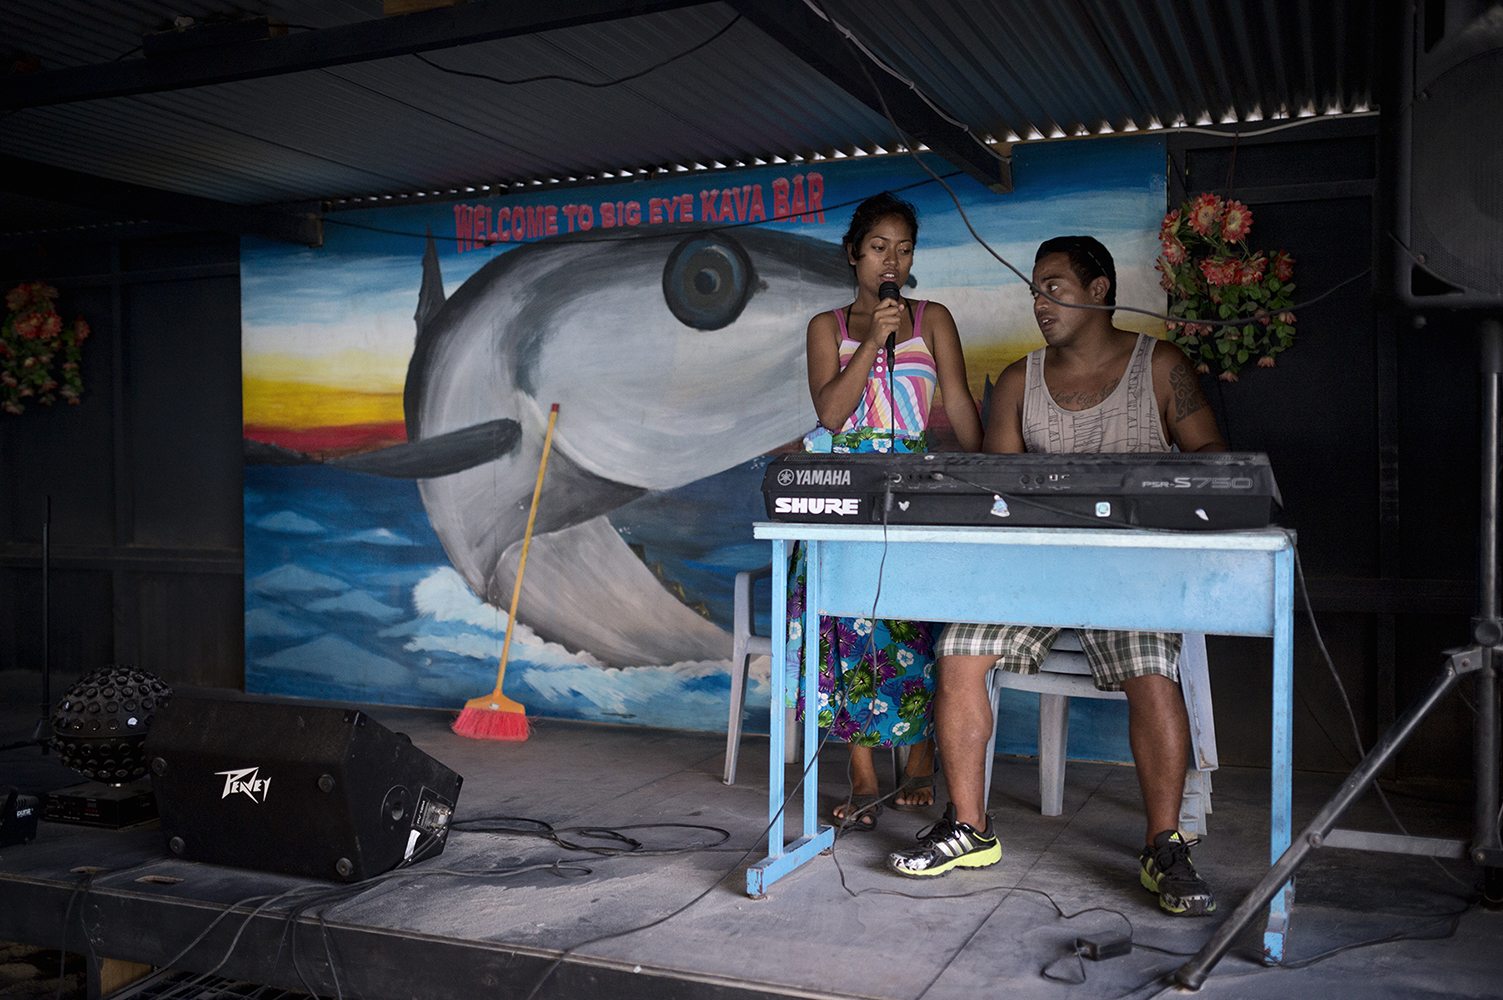 Tarawa Island, Kiribati, Pacific Ocean Karaoke performance on Big Eye Kava bar in the village Te O Ni Beeki, Betio, on Tarawa Island, Kiribati is considered one of the least developed and poorest countries in the world with people whose livelihoods depend on tuna. Since the arrival of foreign fishing vessels in Kiribati waters the catches for the local fishermen has been reduced.